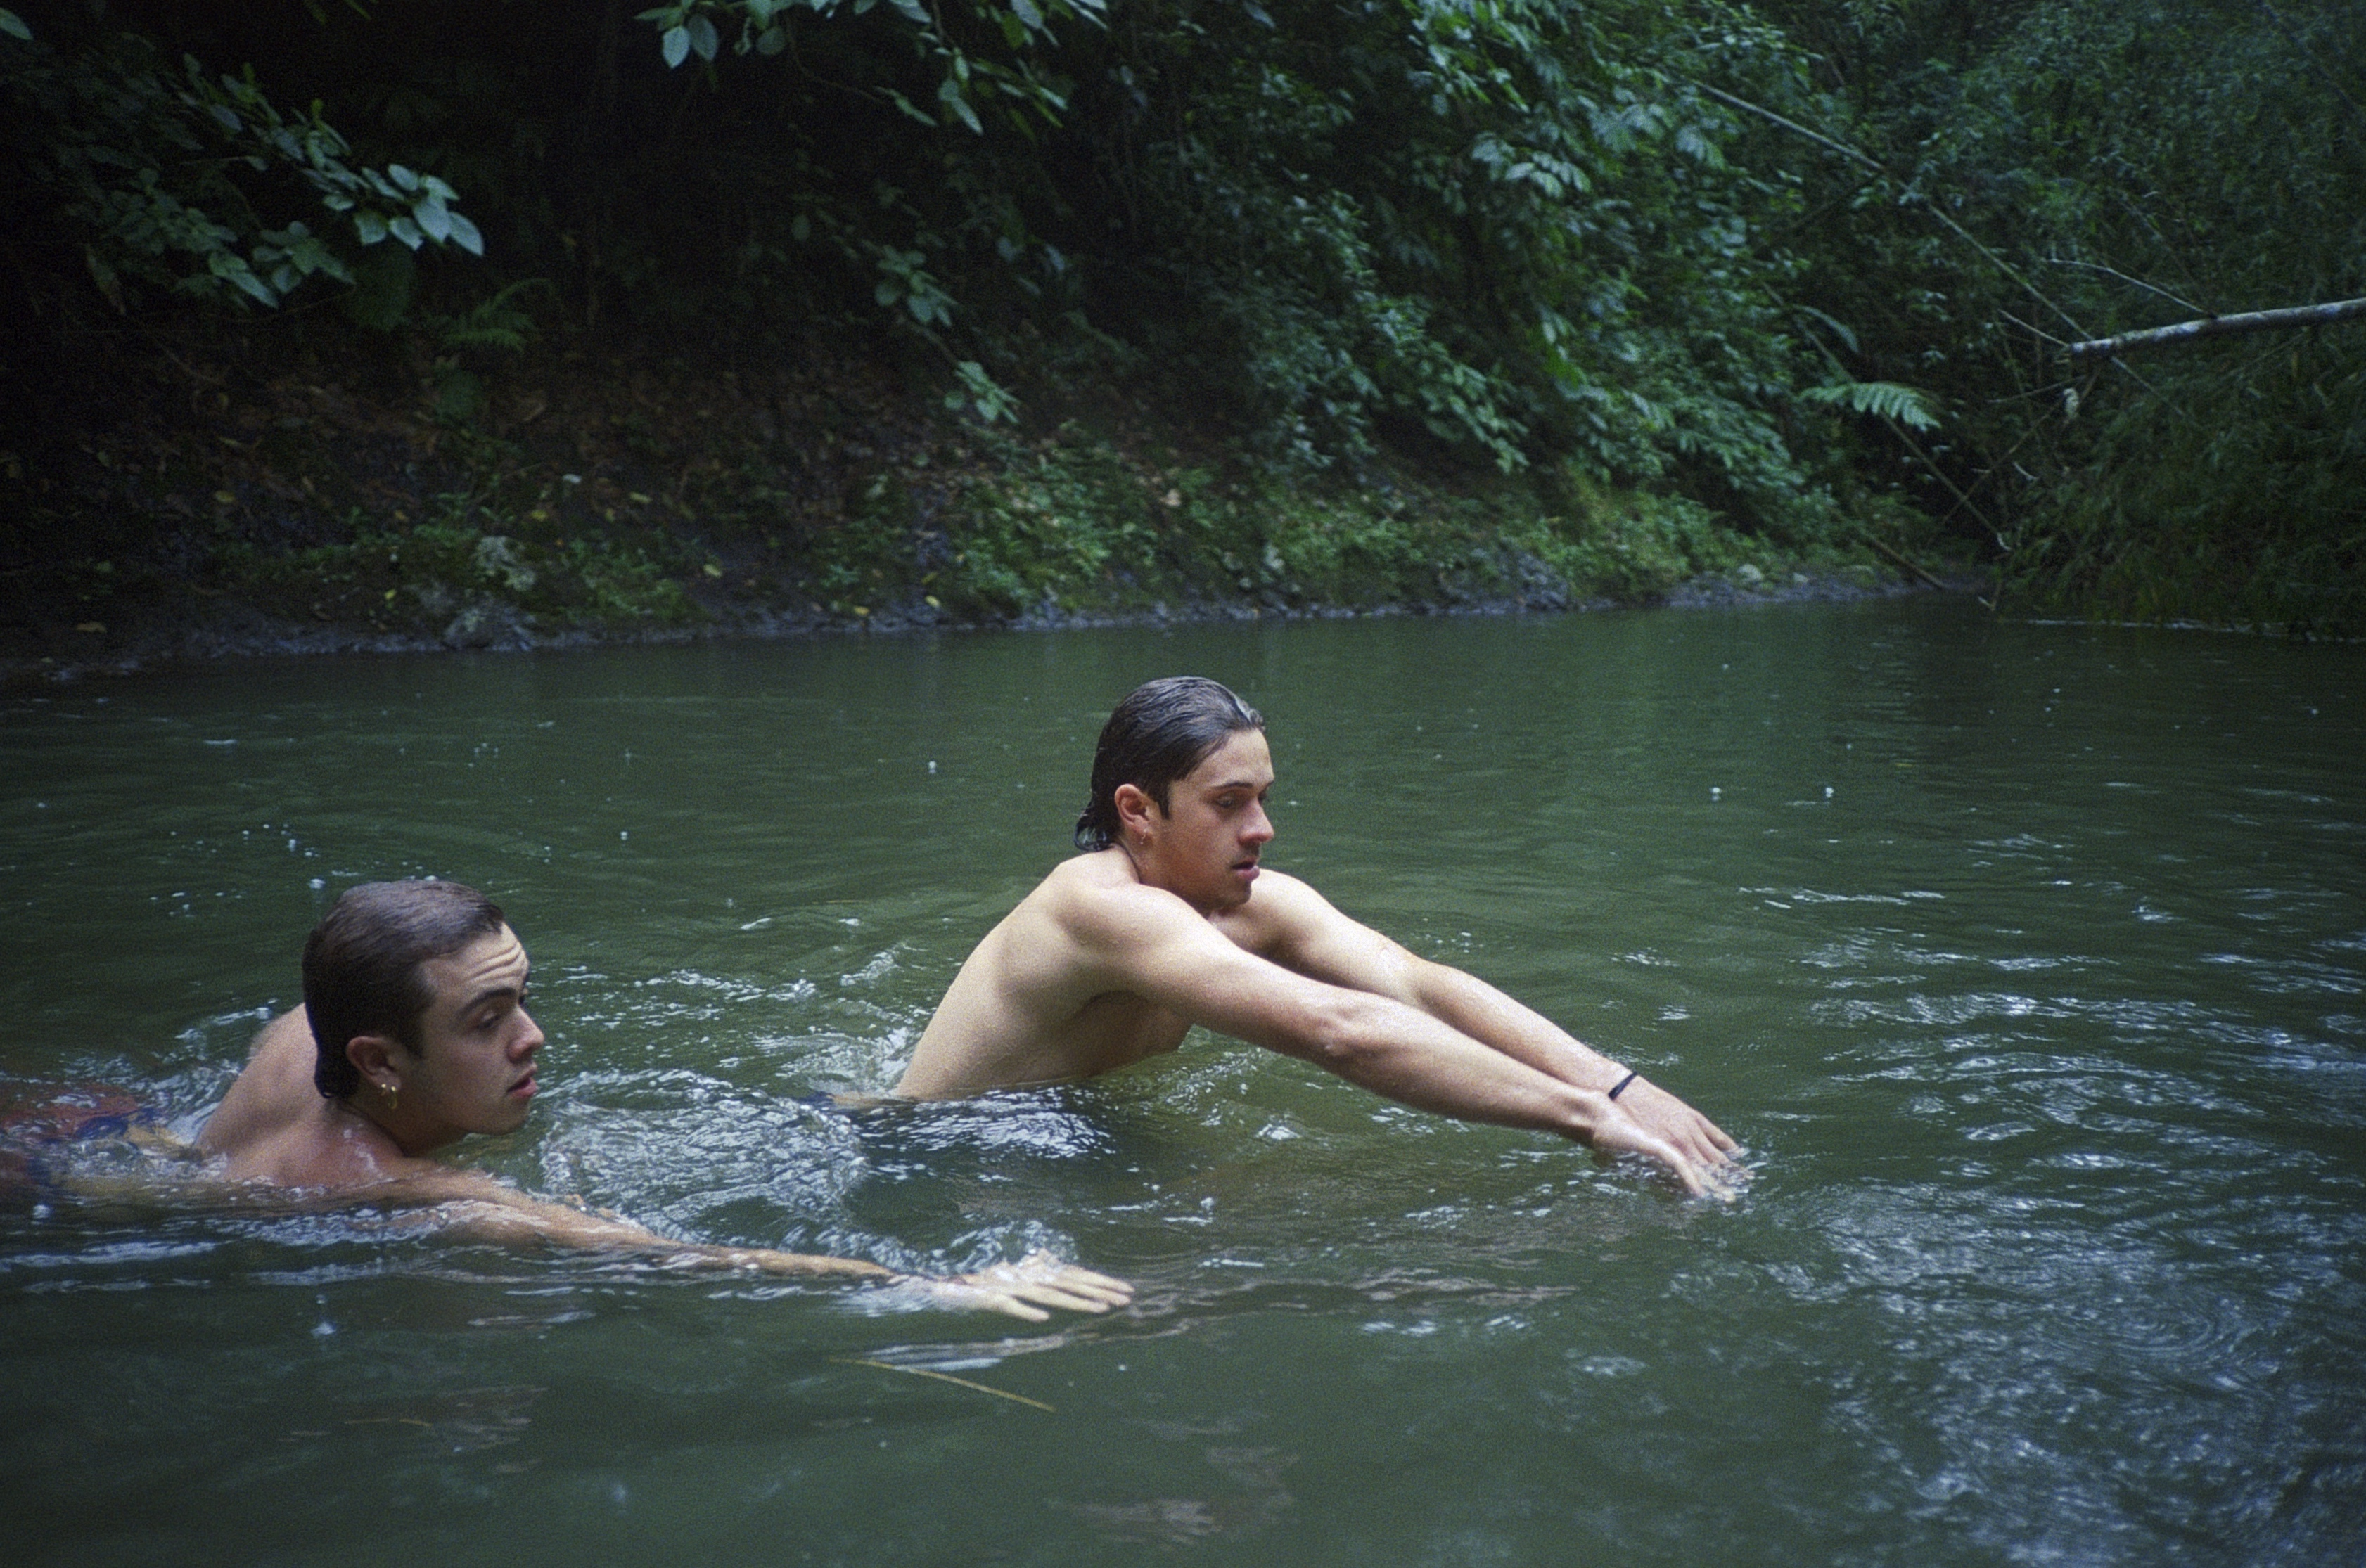 Two boys swim in a lake surrounded by trees